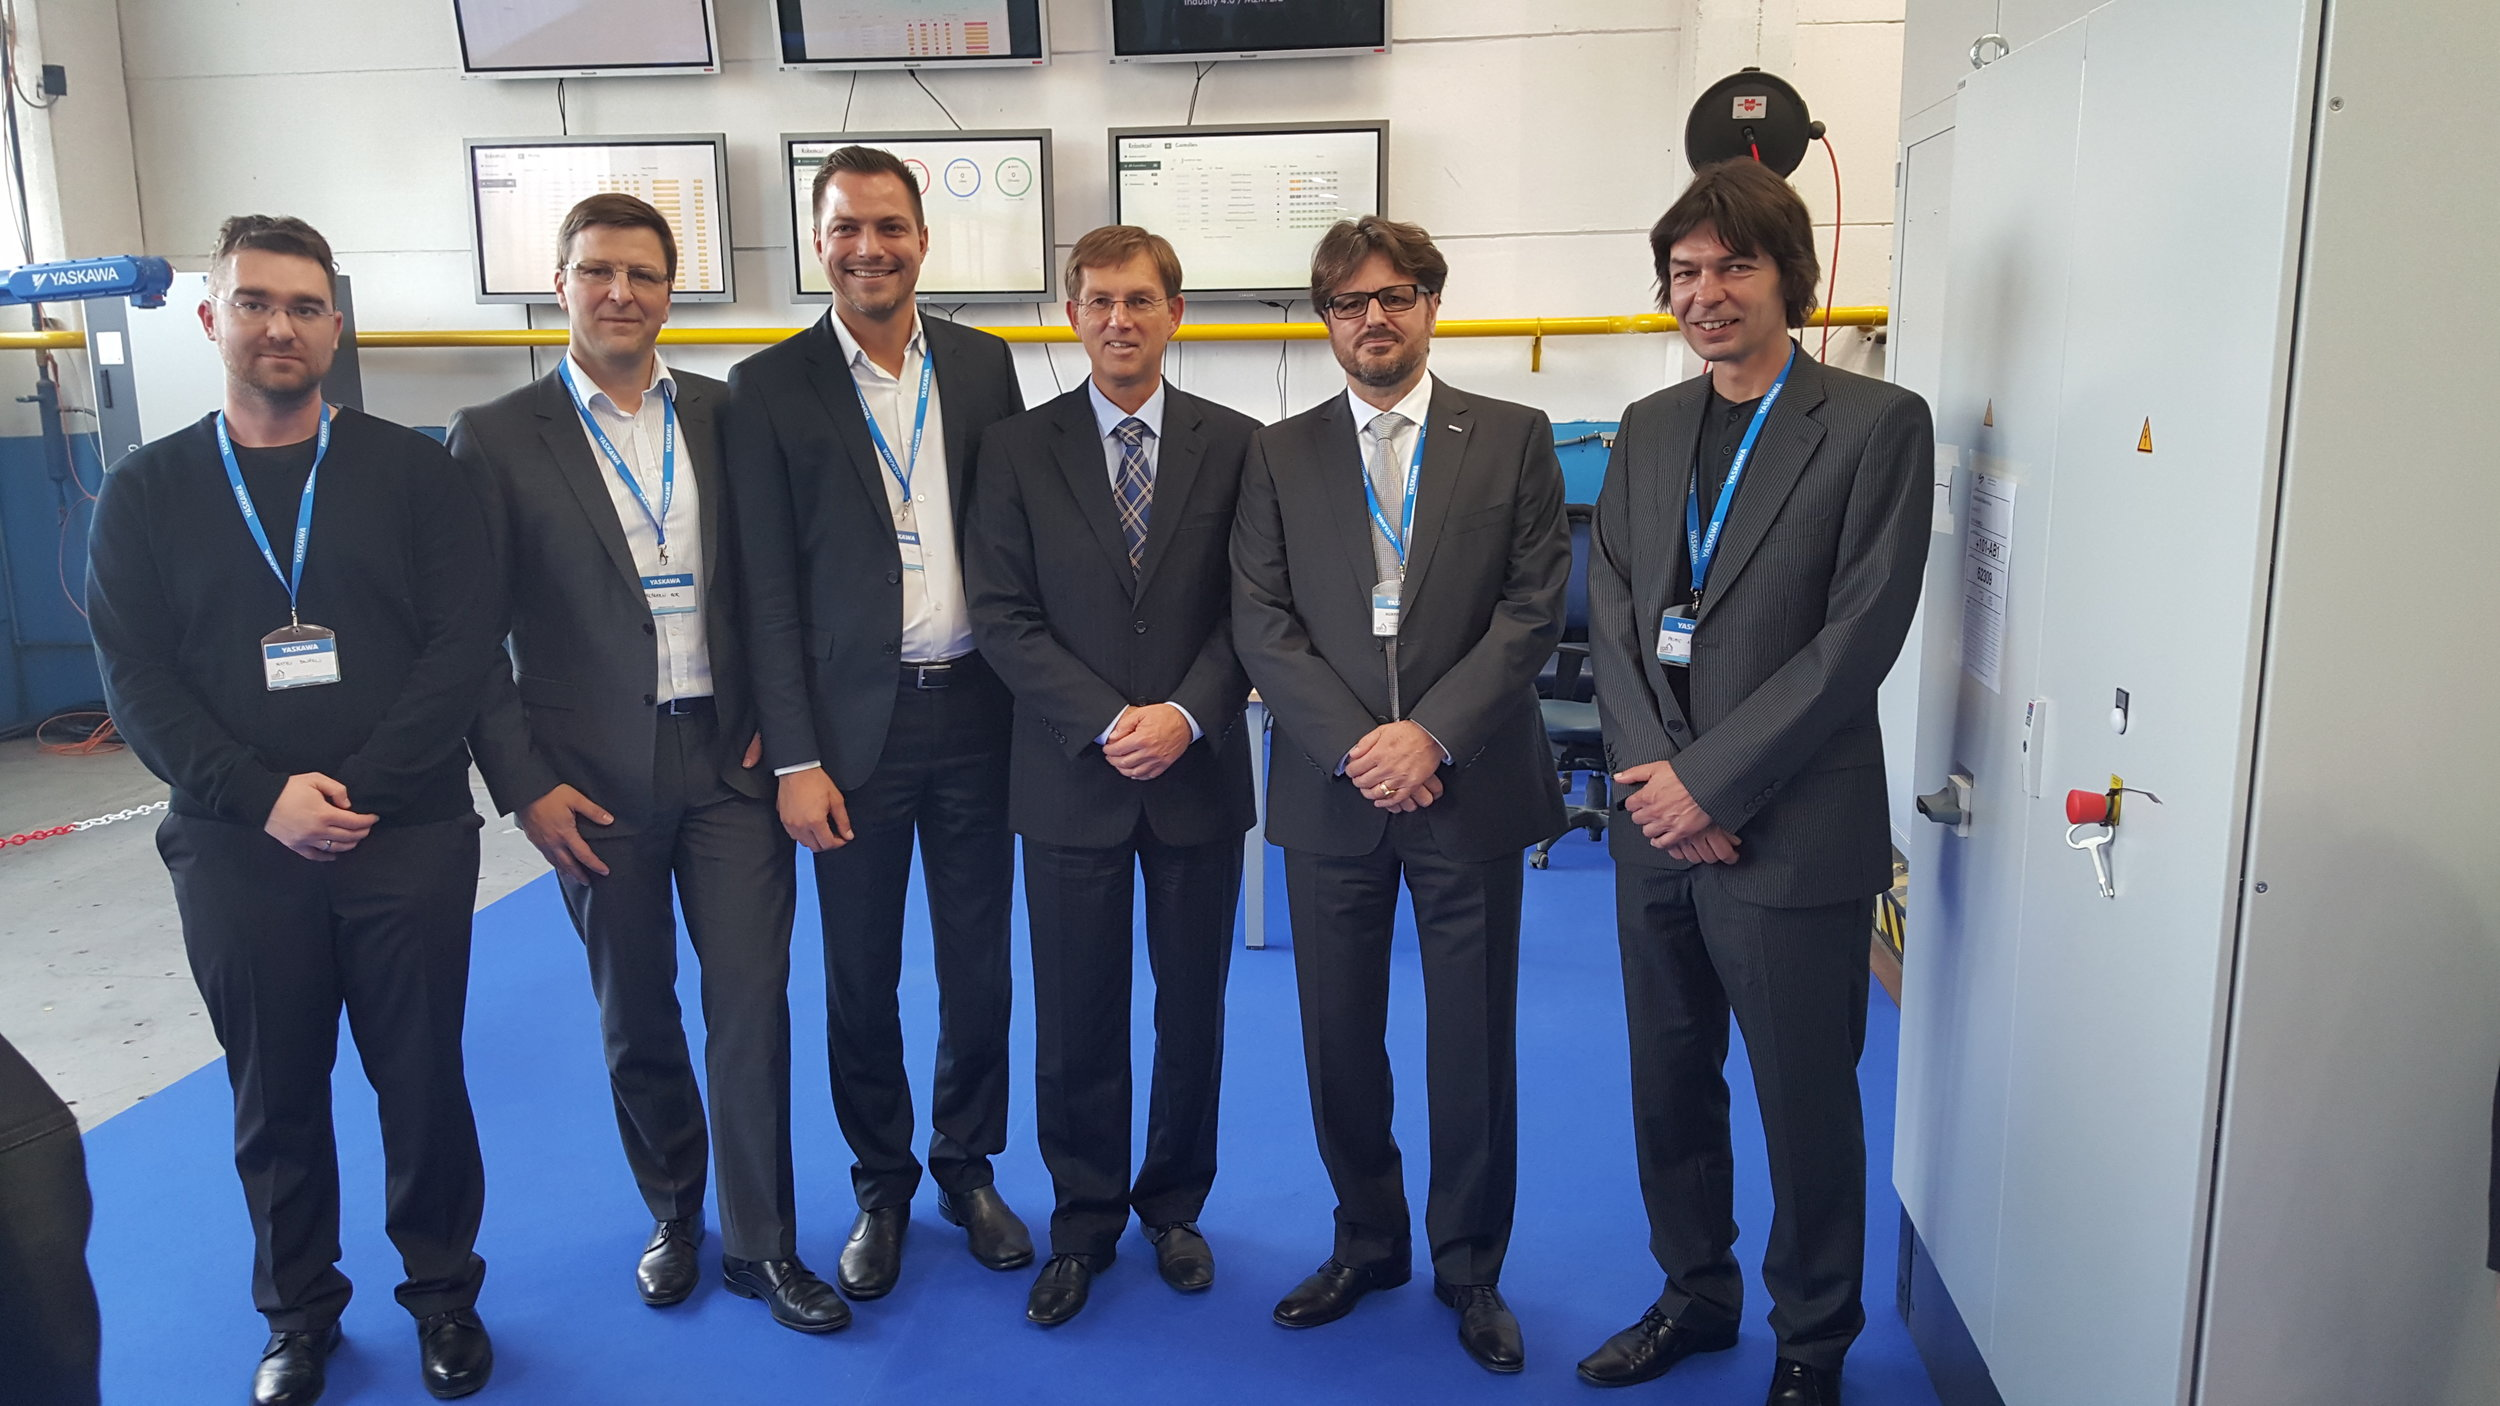 RoboticsX Team presenting Smart Robotics Solution at Yaskawa 100 Years AnniversaryMr. Hubert Kosler, Managing Director Yaskawa SloveniaMr. Miro Cerar, Prime Minister Slovenia -